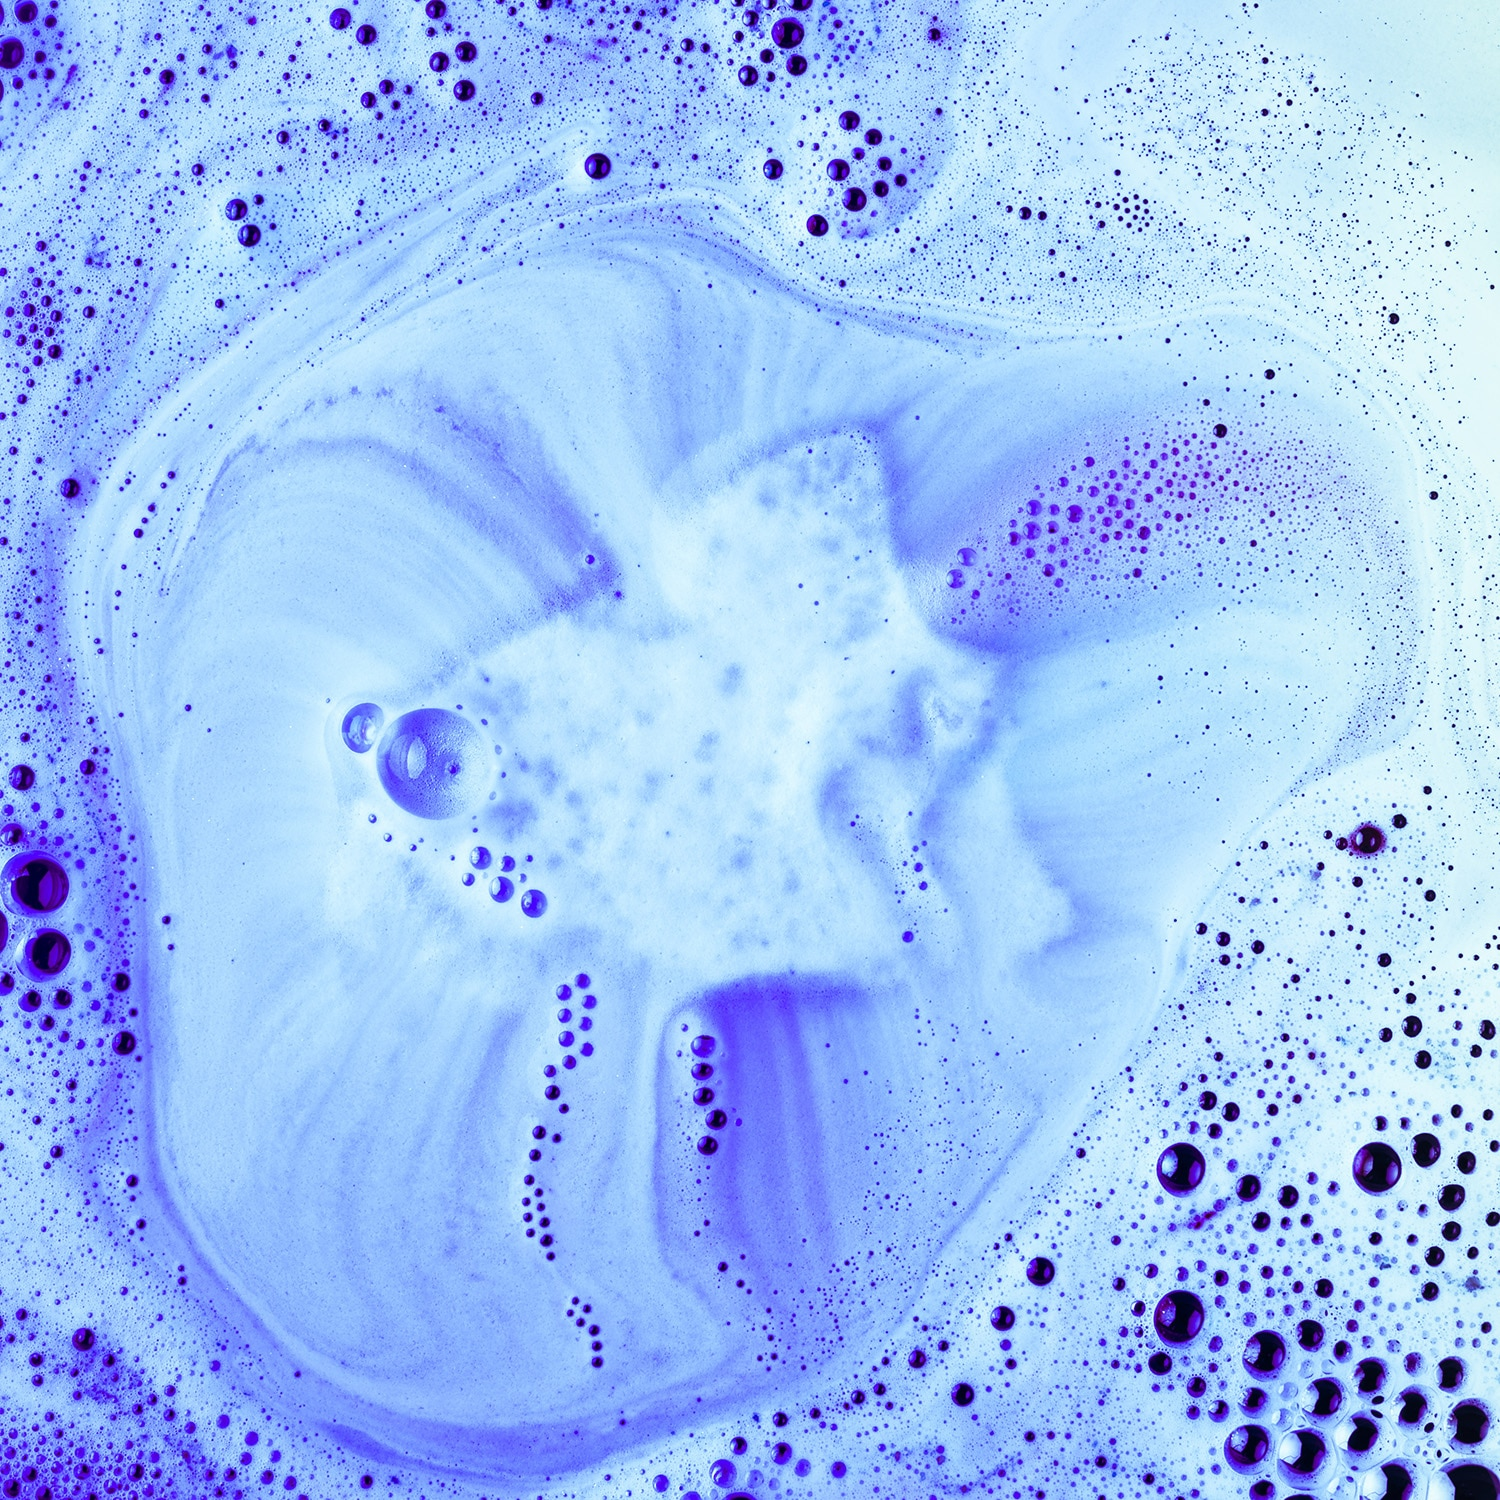 blue bath bomb fizzing in bath tub water